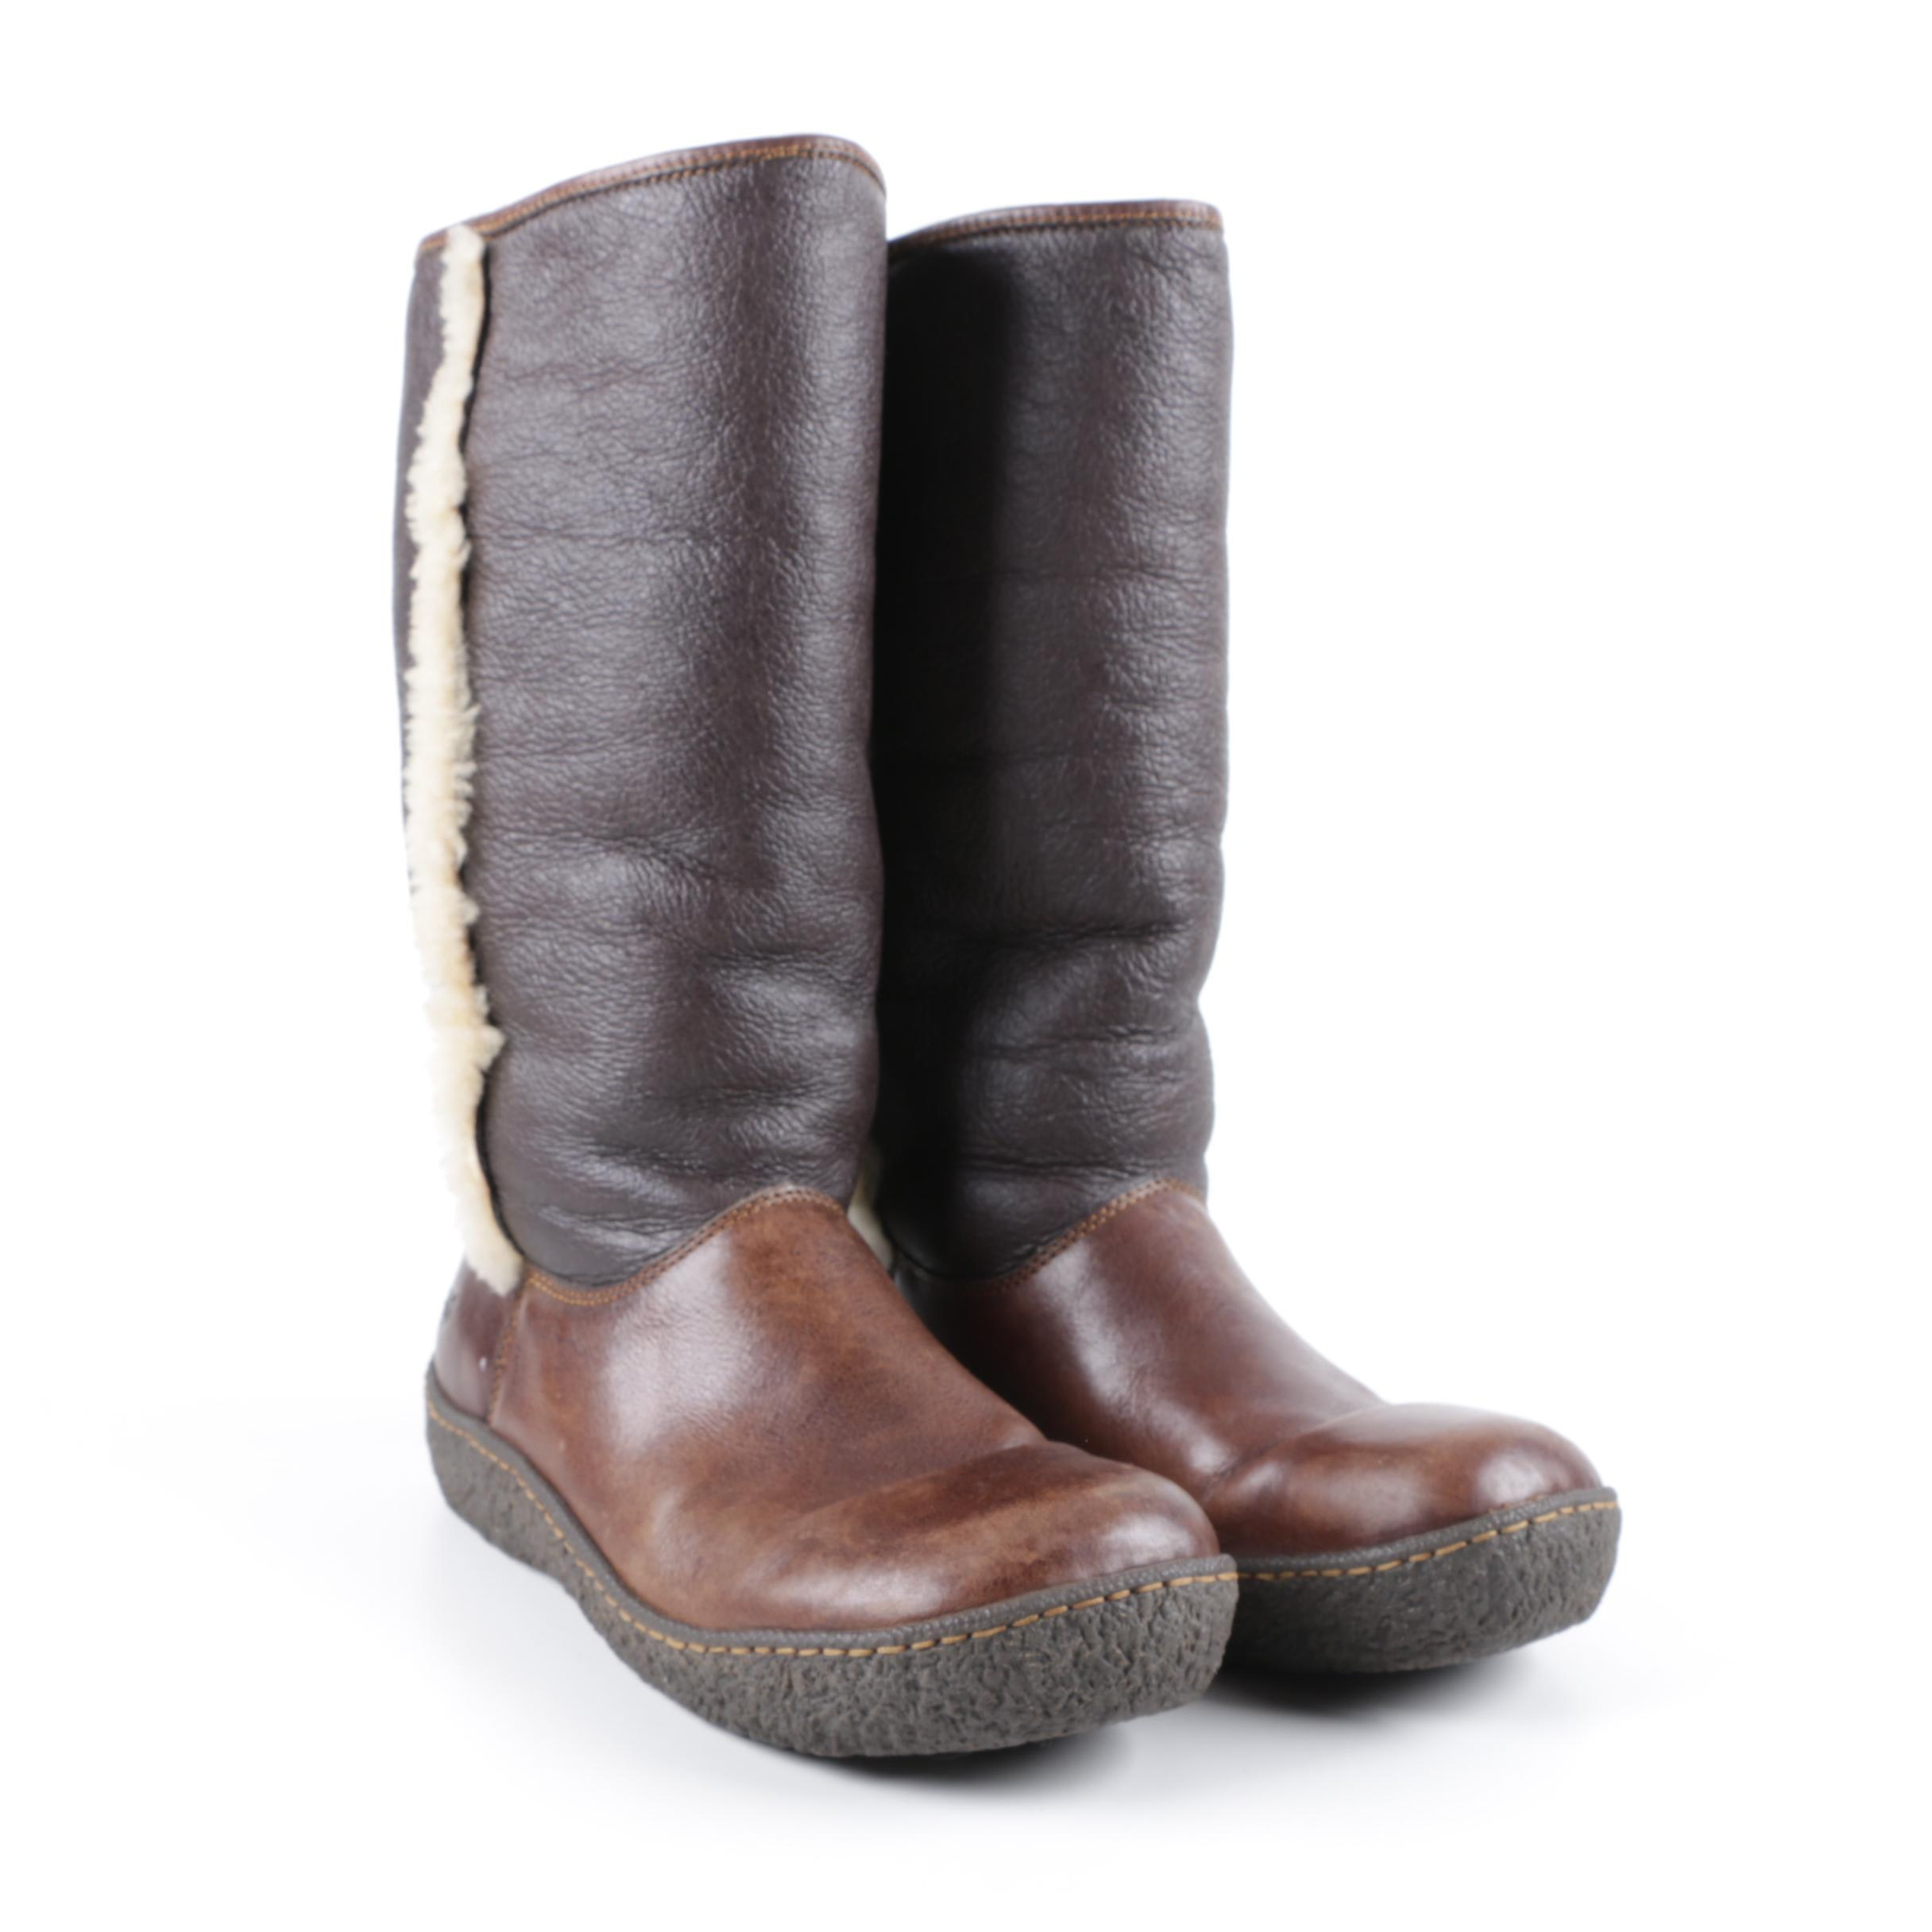 Women's Born Shearling Lined Leather Boots